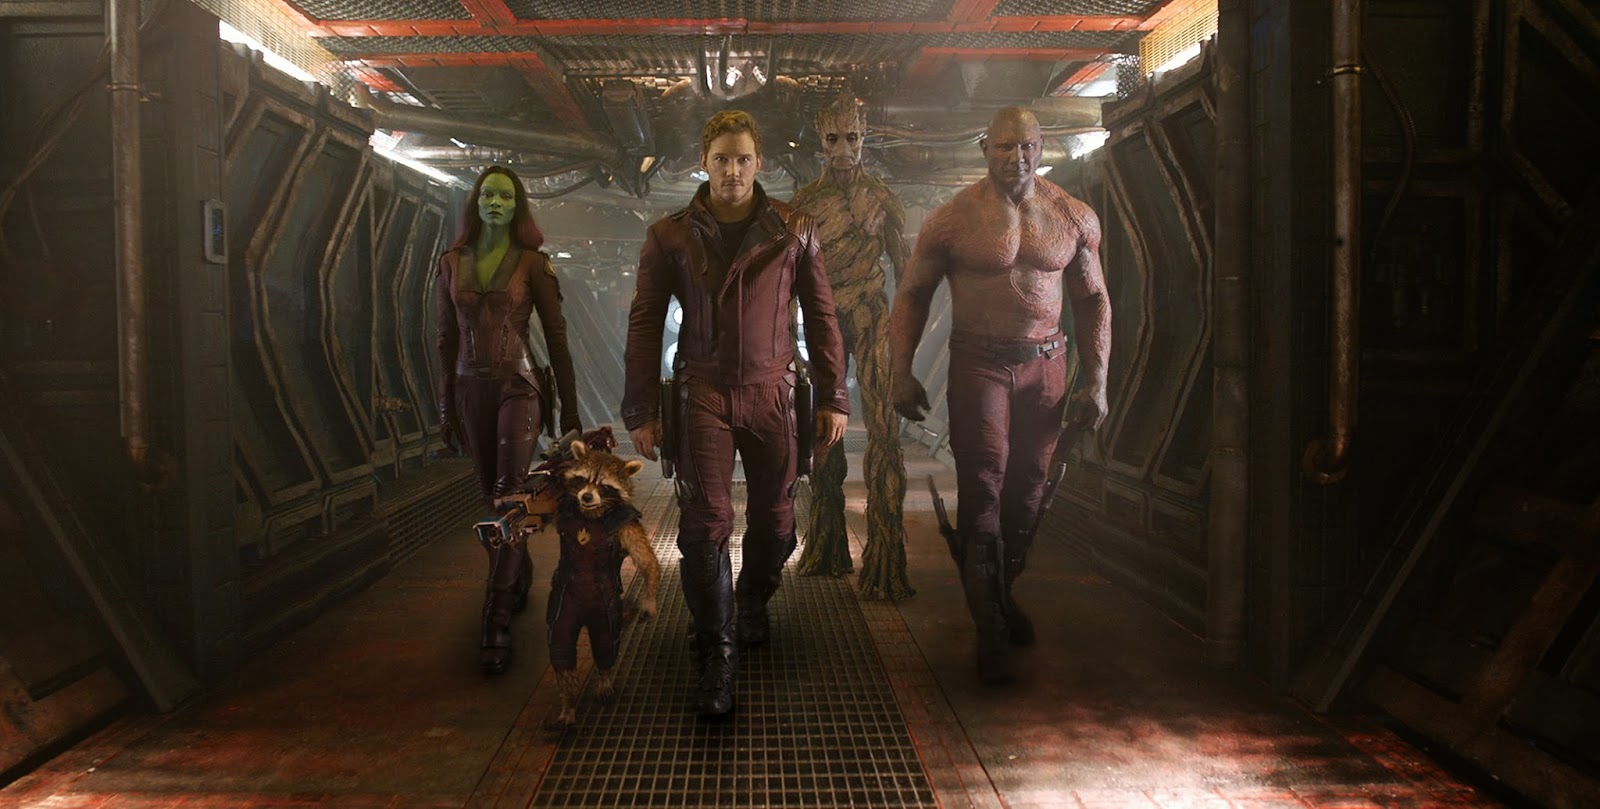 5. Guardians of the Galaxy